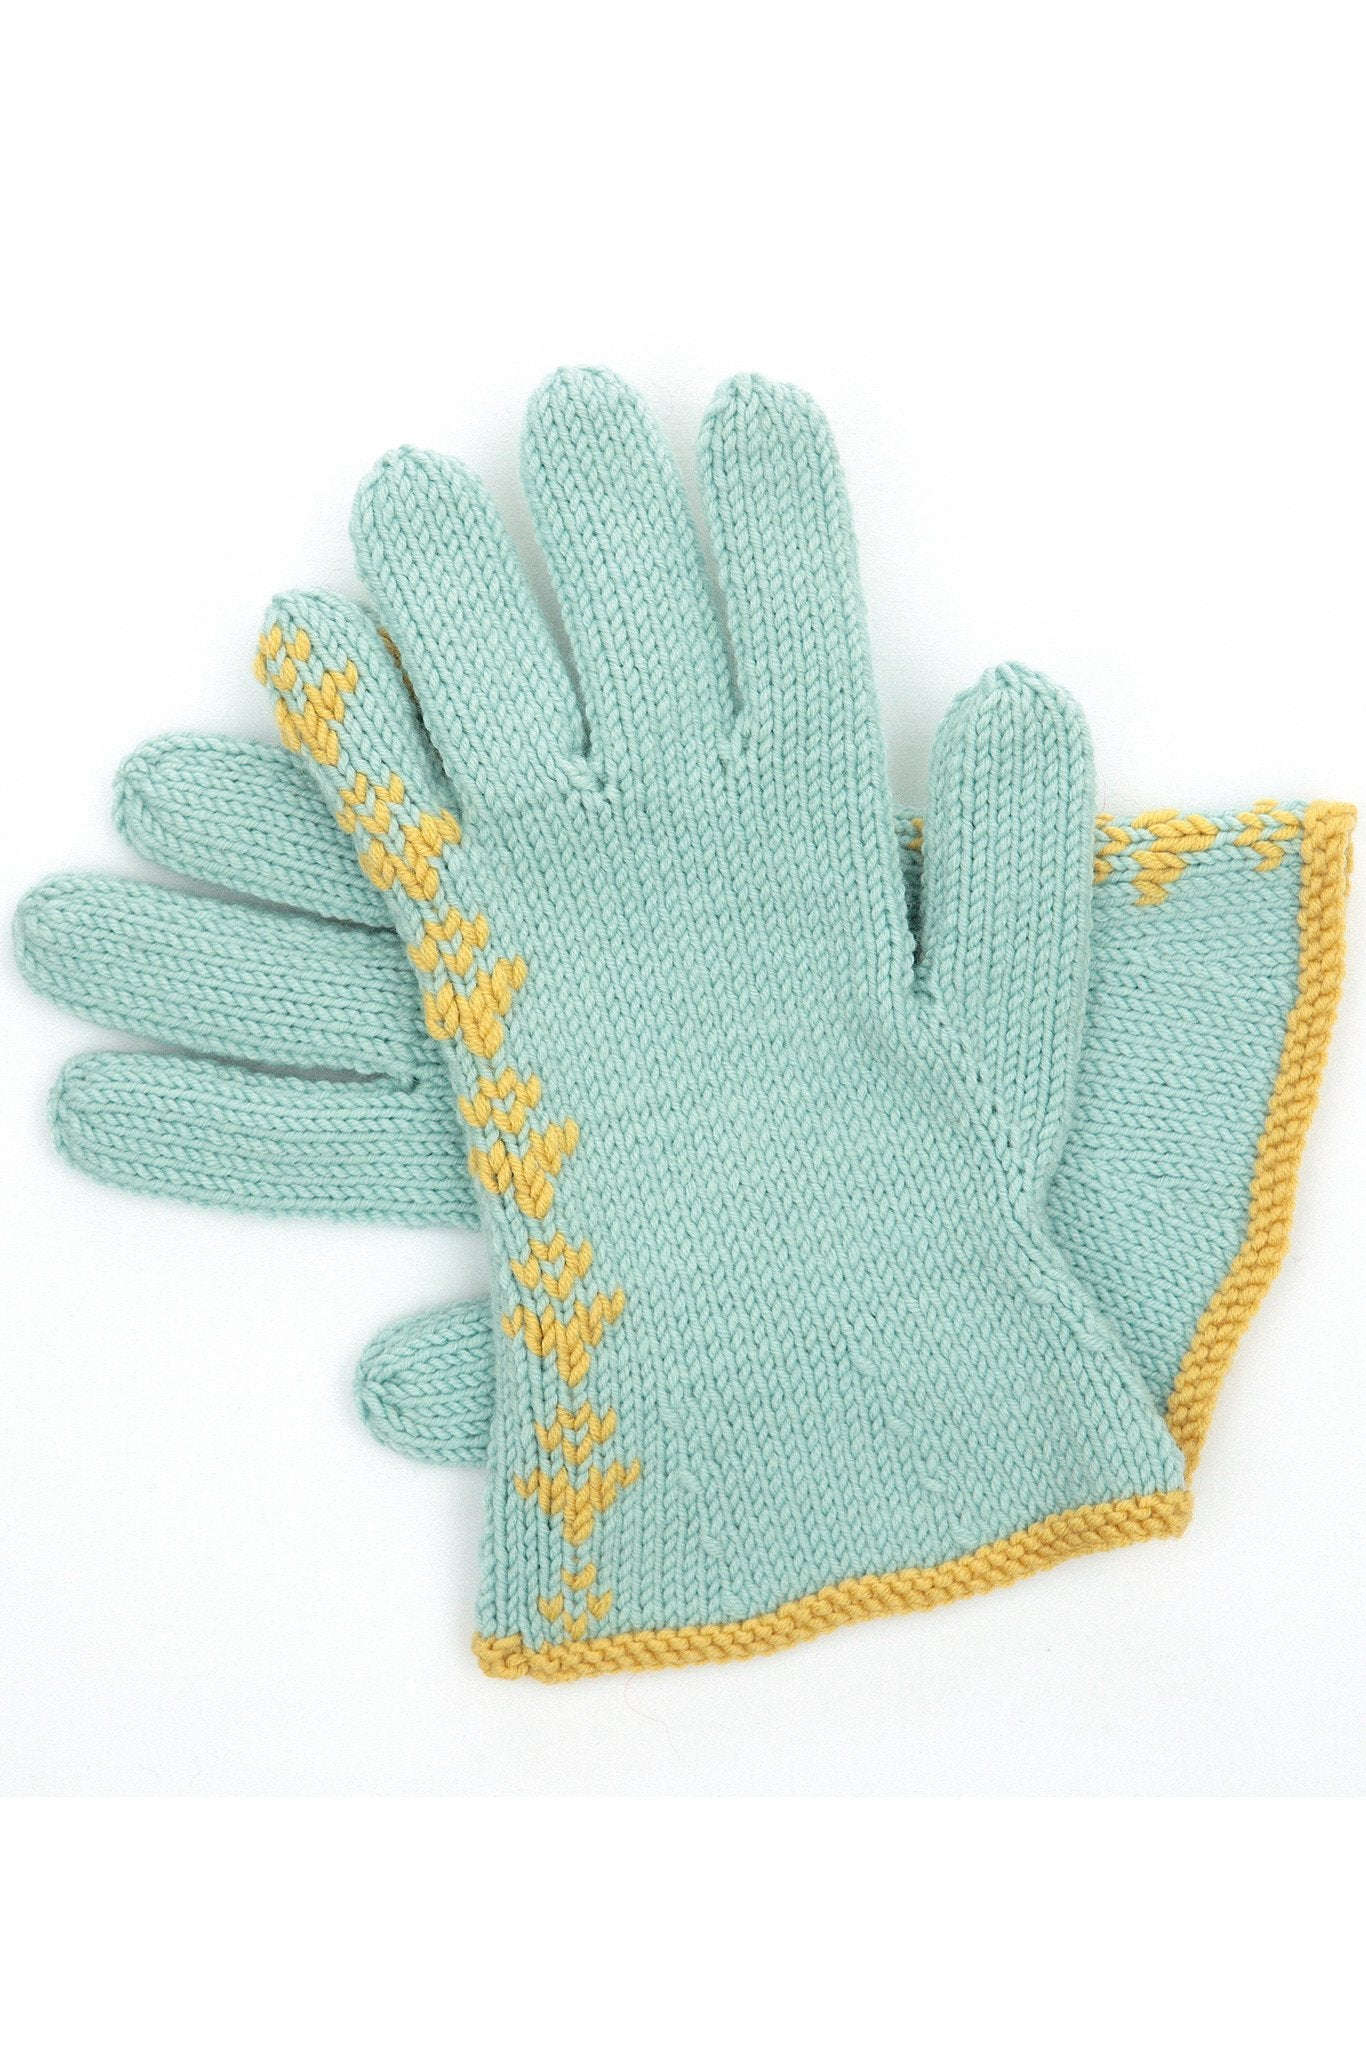 Knitting Network Stickman : Vintage gloves knitting pattern the network